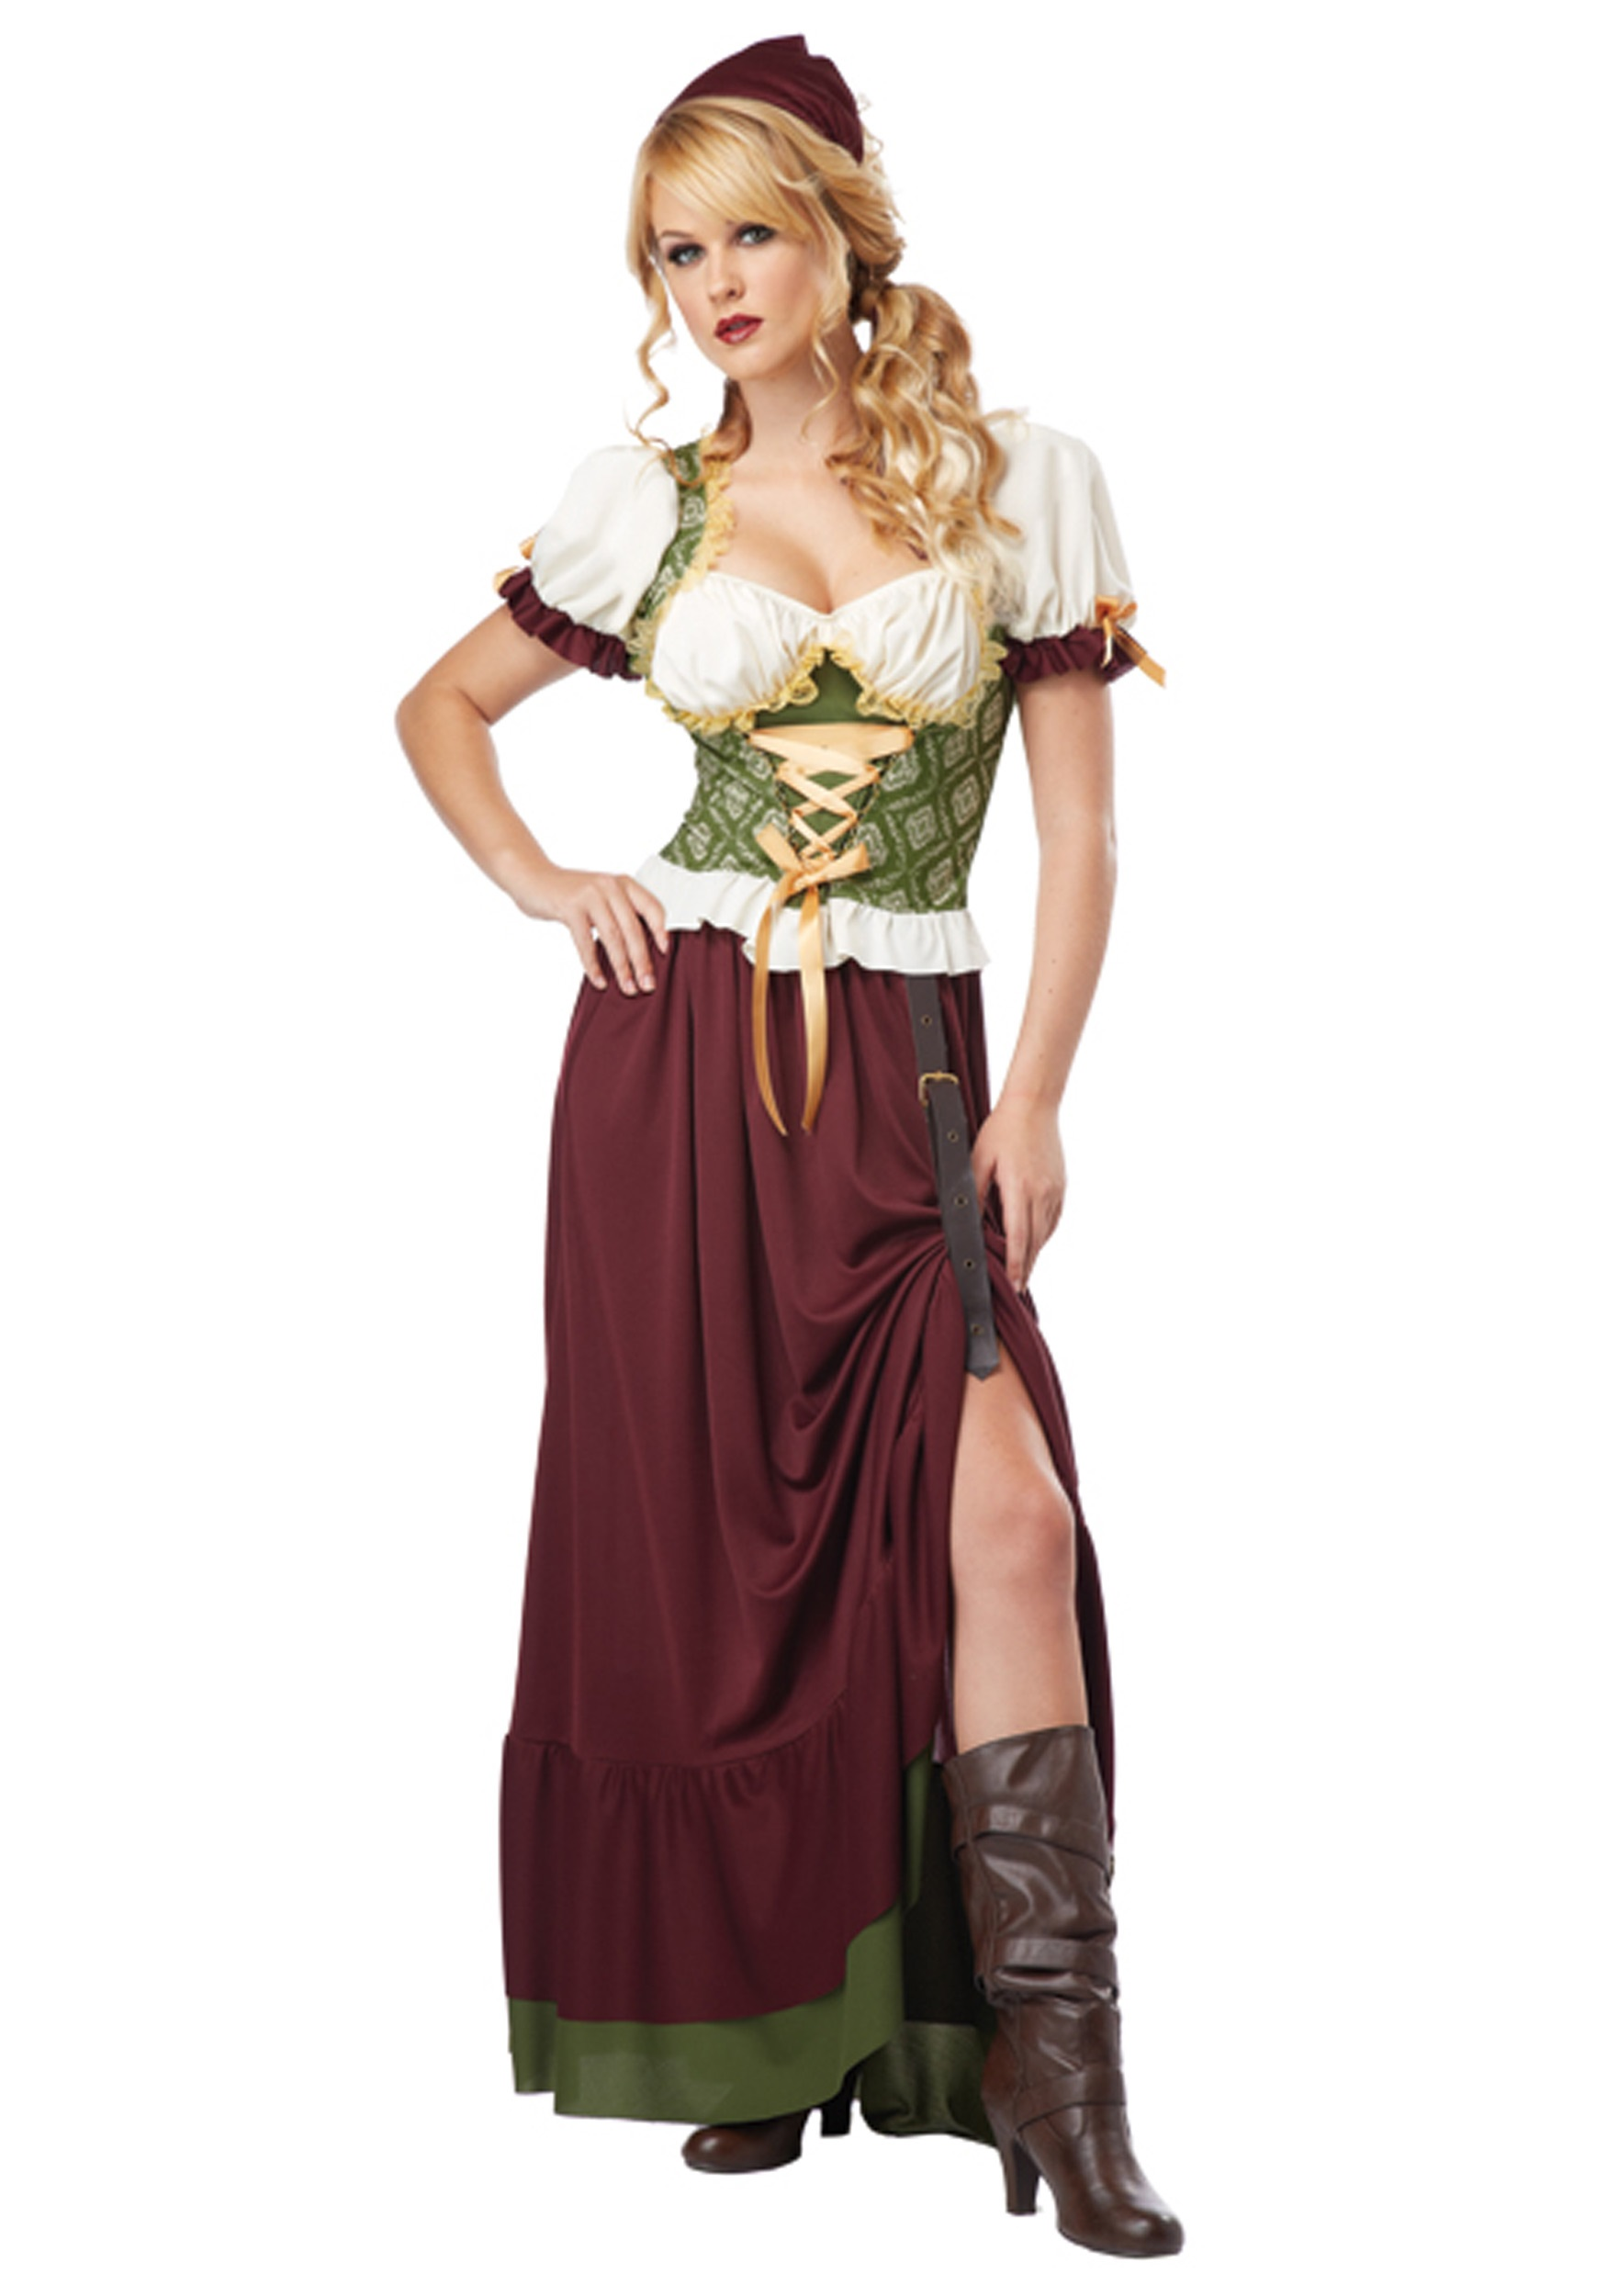 http://images.halloweencostumes.com/products/15376/1-1/renaissance-wench-costume.jpg